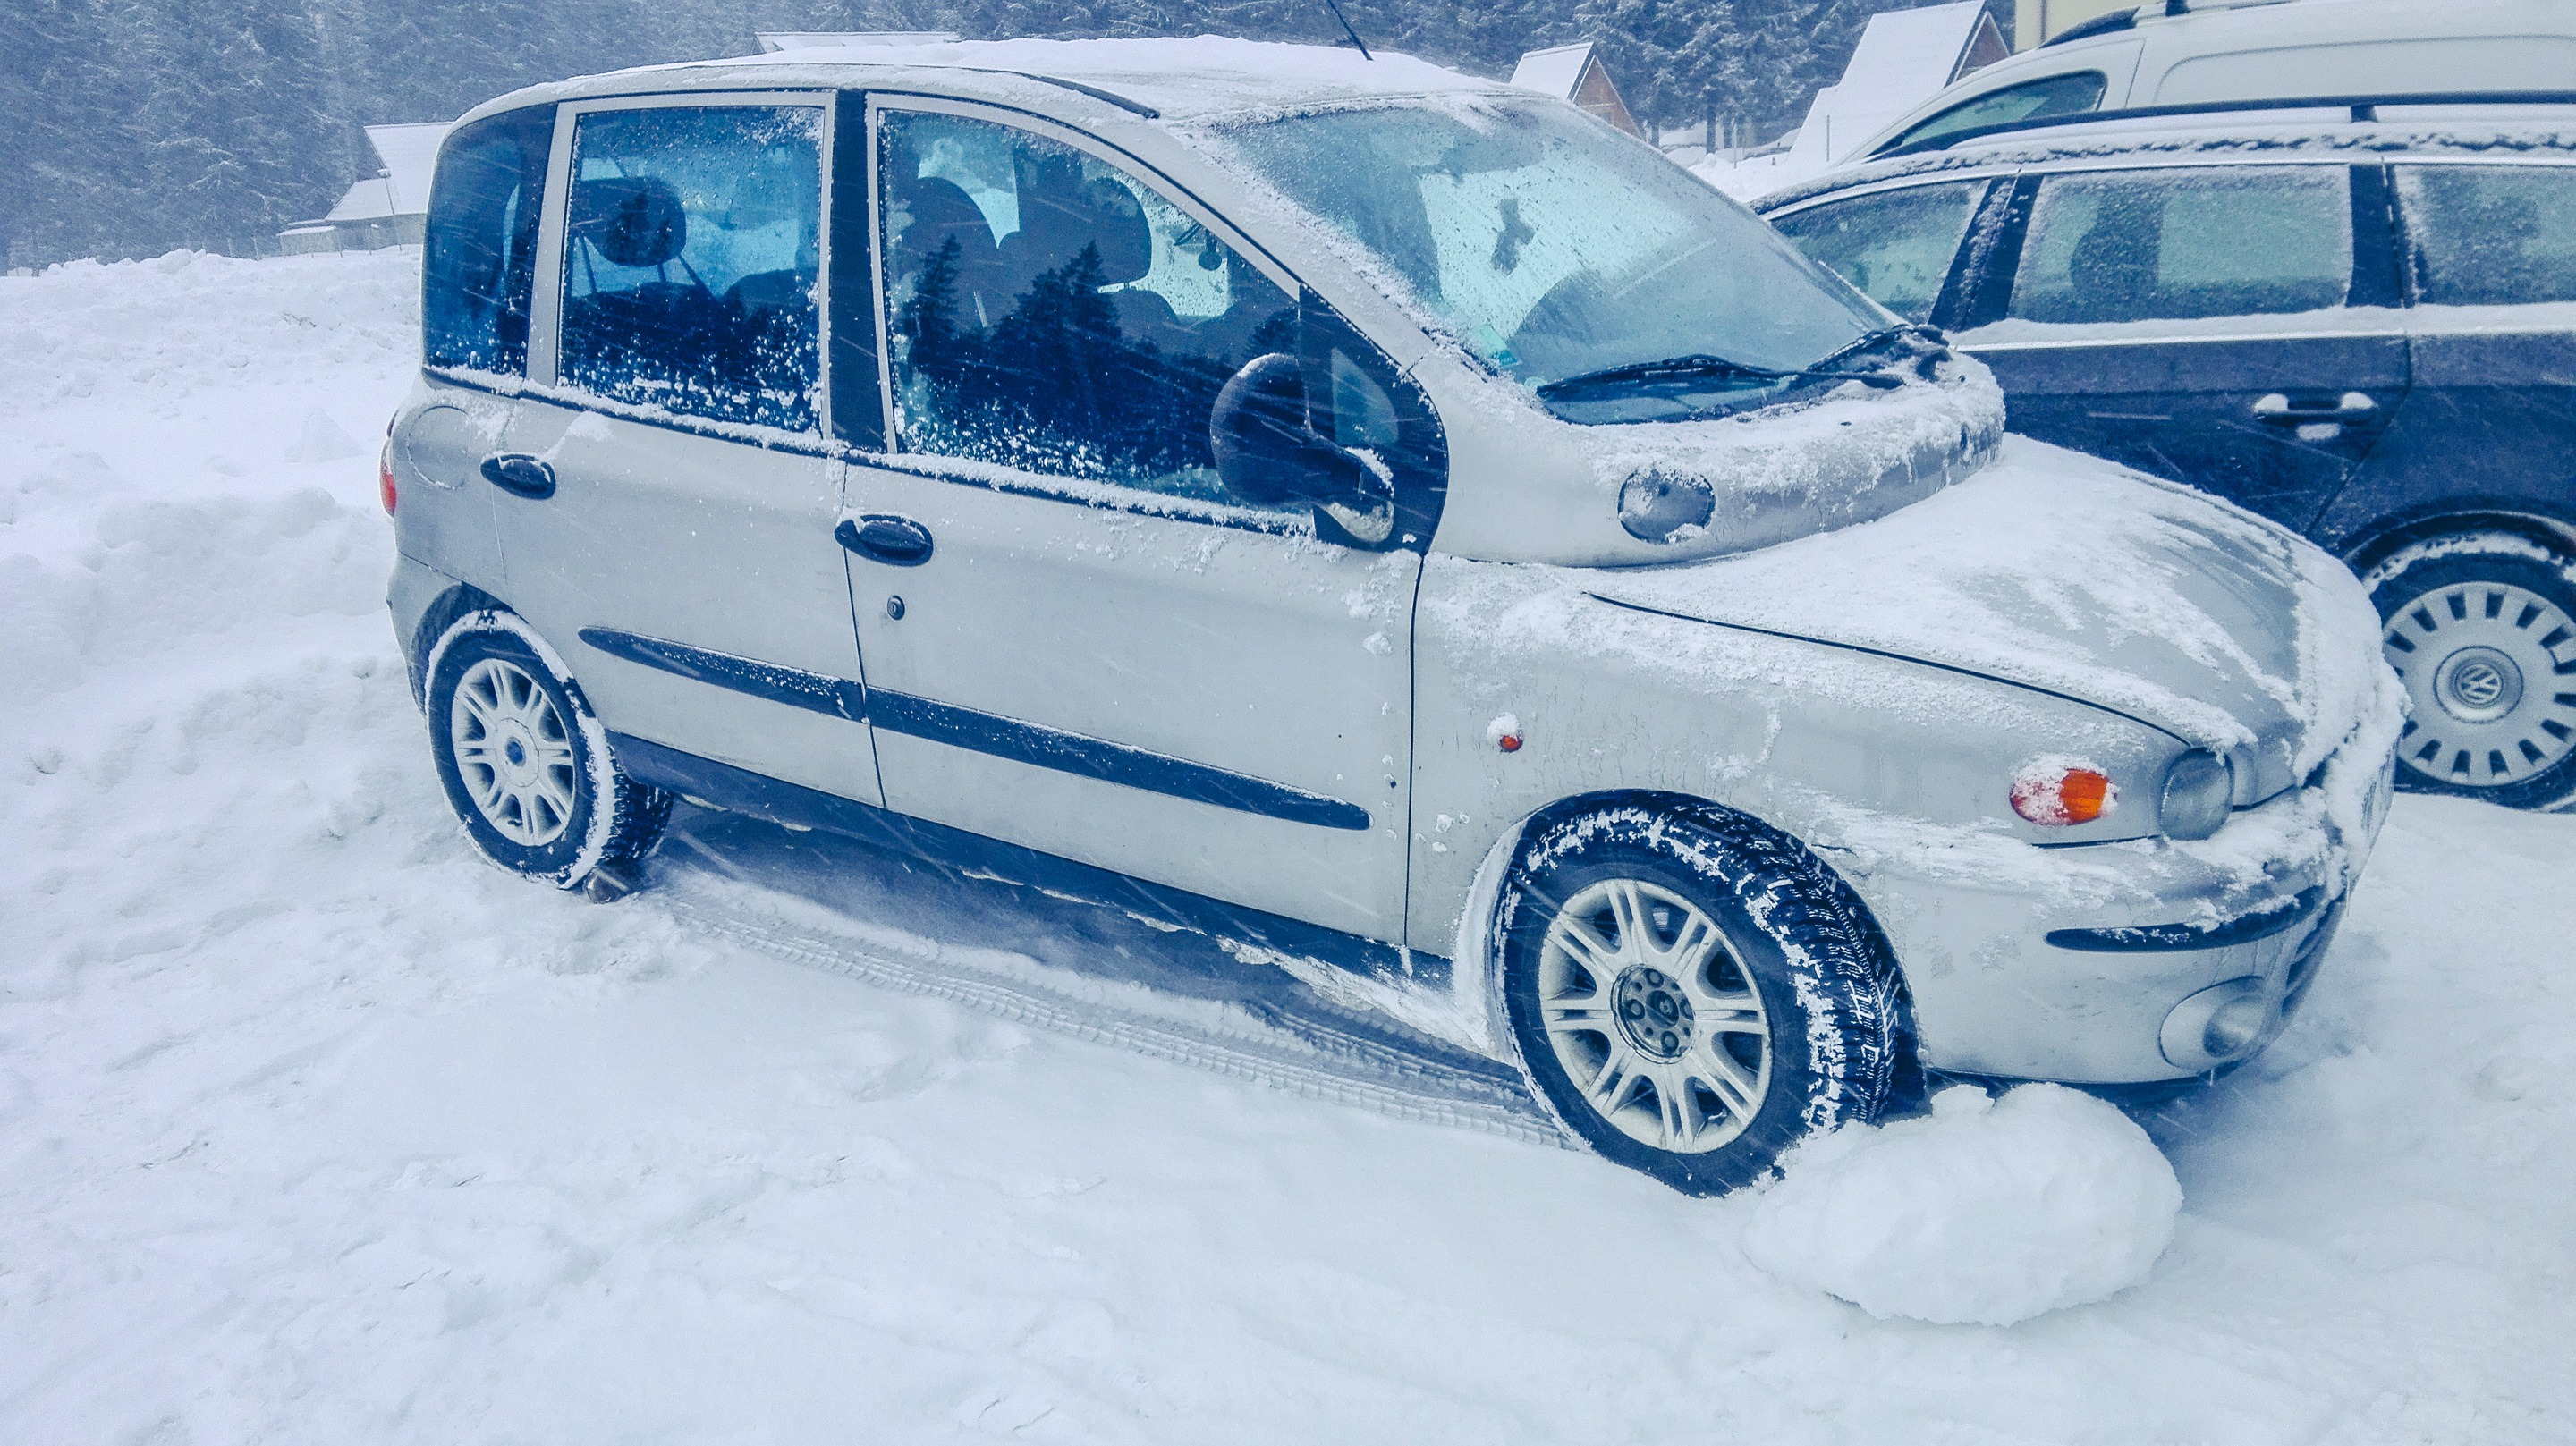 Our car before going for a winter hike to Morskie Oko, Poland. Photo by Alis Monte [CC BY-SA 4.0], via Connecting the Dots